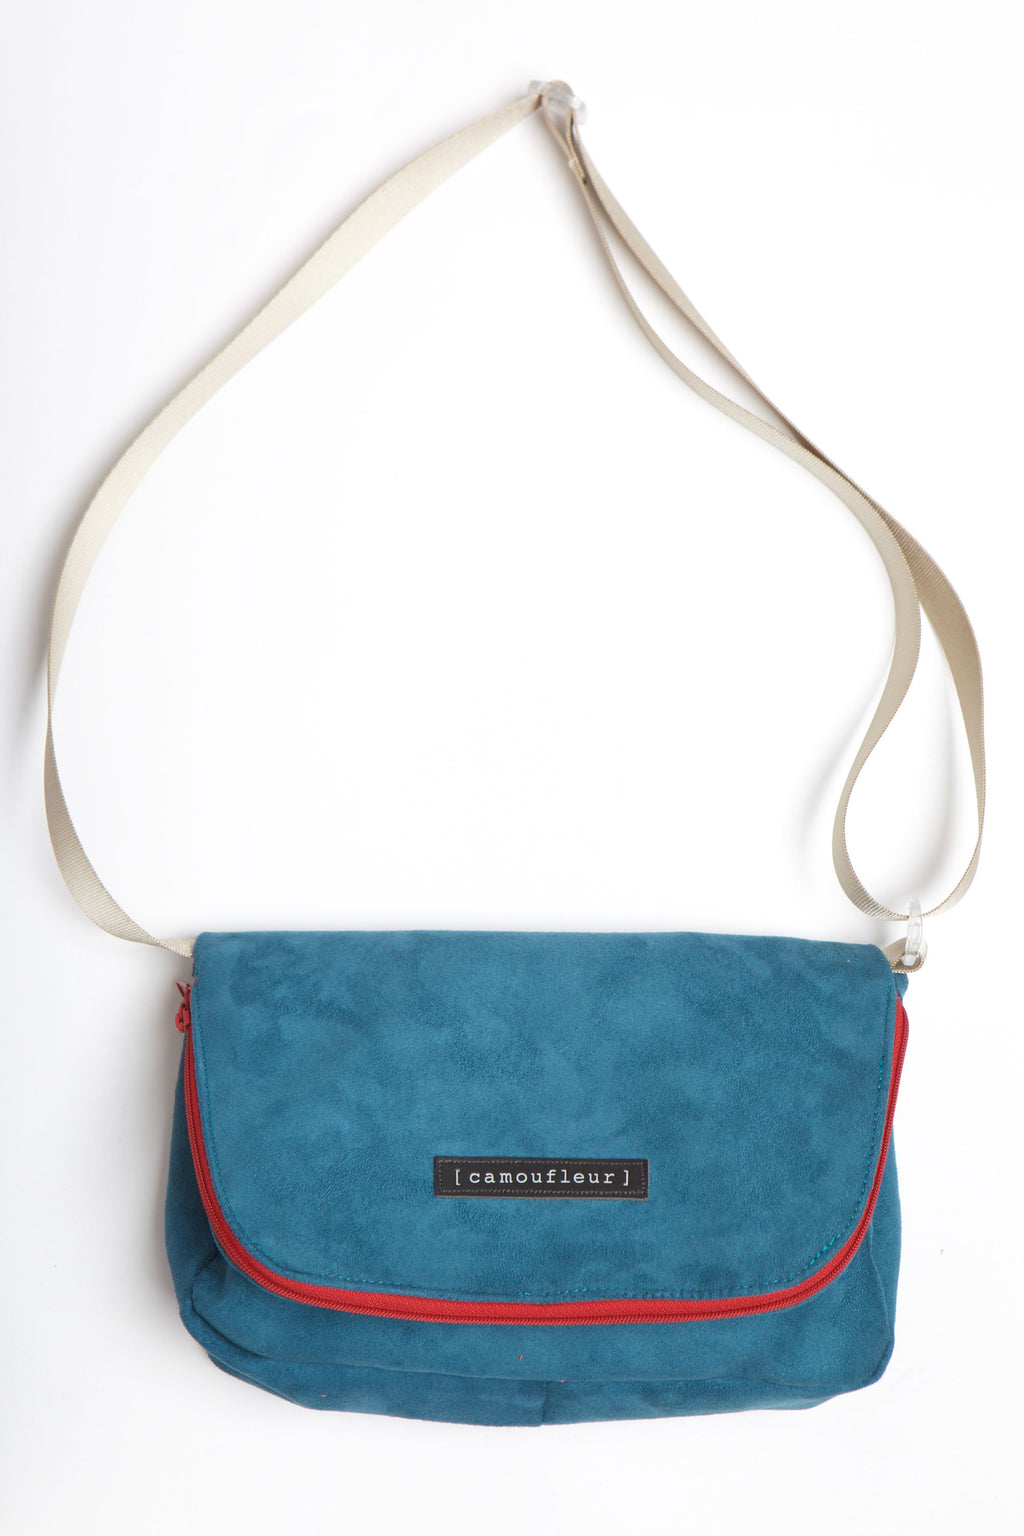 Teal cross over handbag with red zipper and tan colored strap.